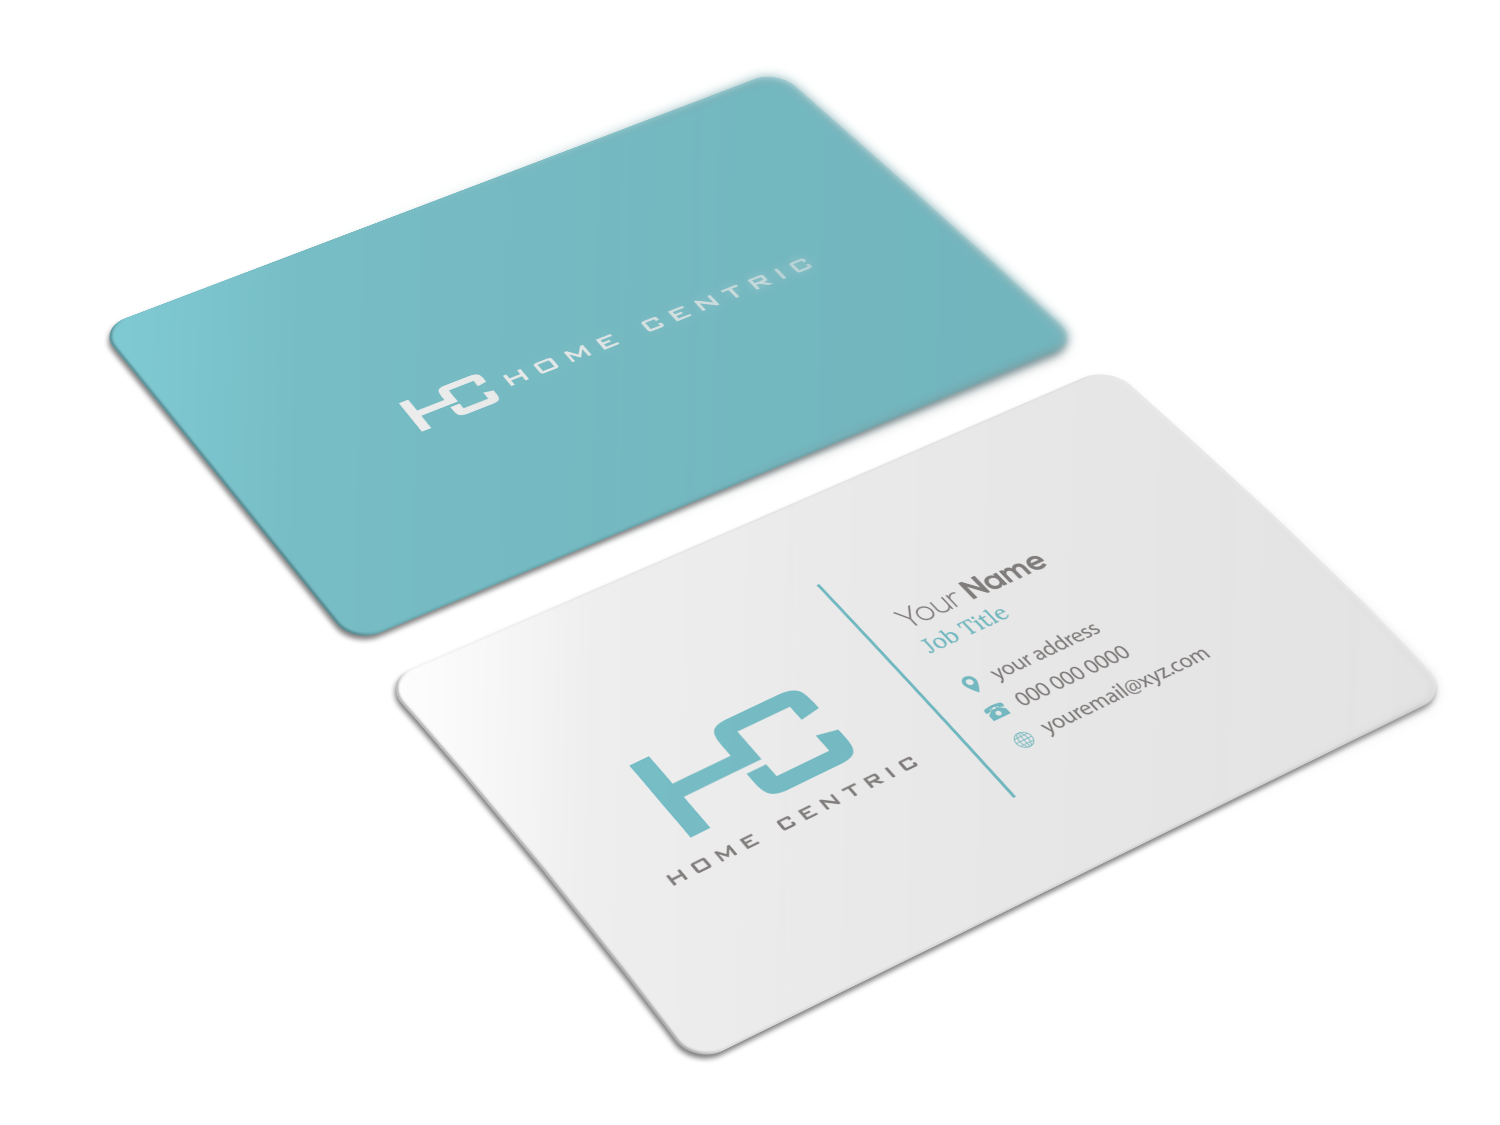 Modern professional business business card design for home centric business card design by riz for home centric design 13024844 reheart Image collections